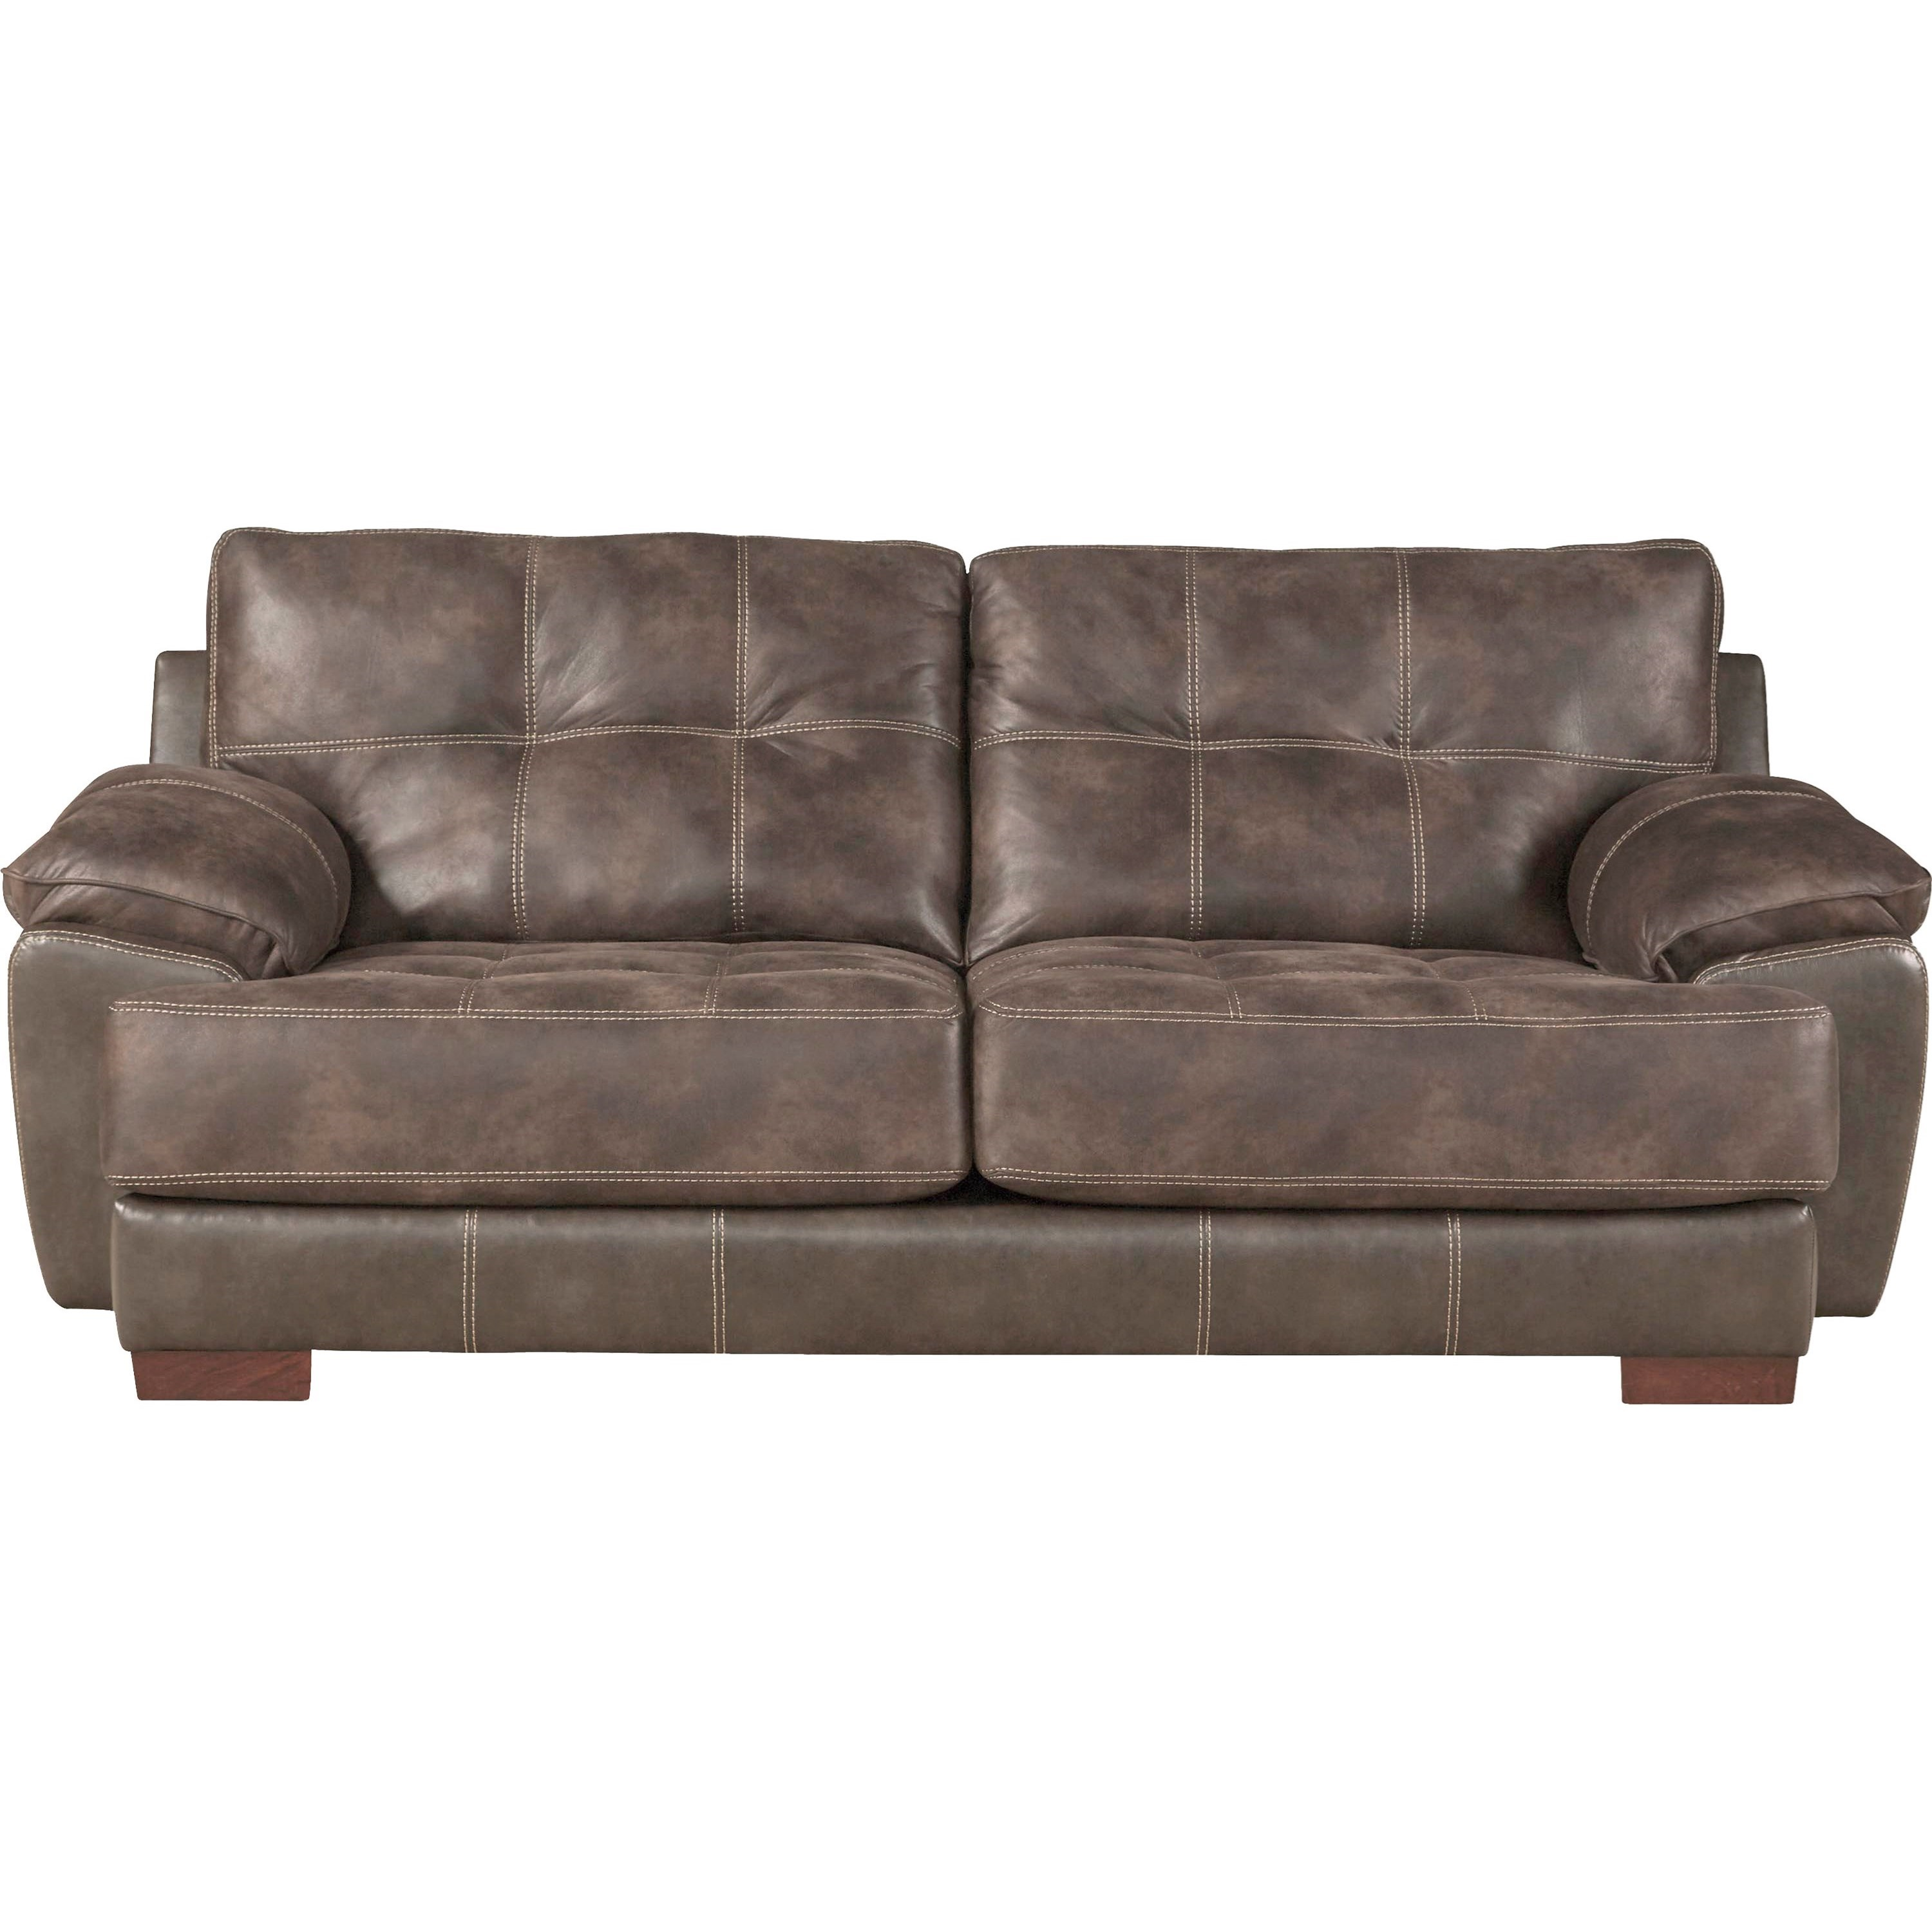 Jackson Furniture Drummond Two Seat Sofa - Item Number: 4296-03-1152-89-1300-89